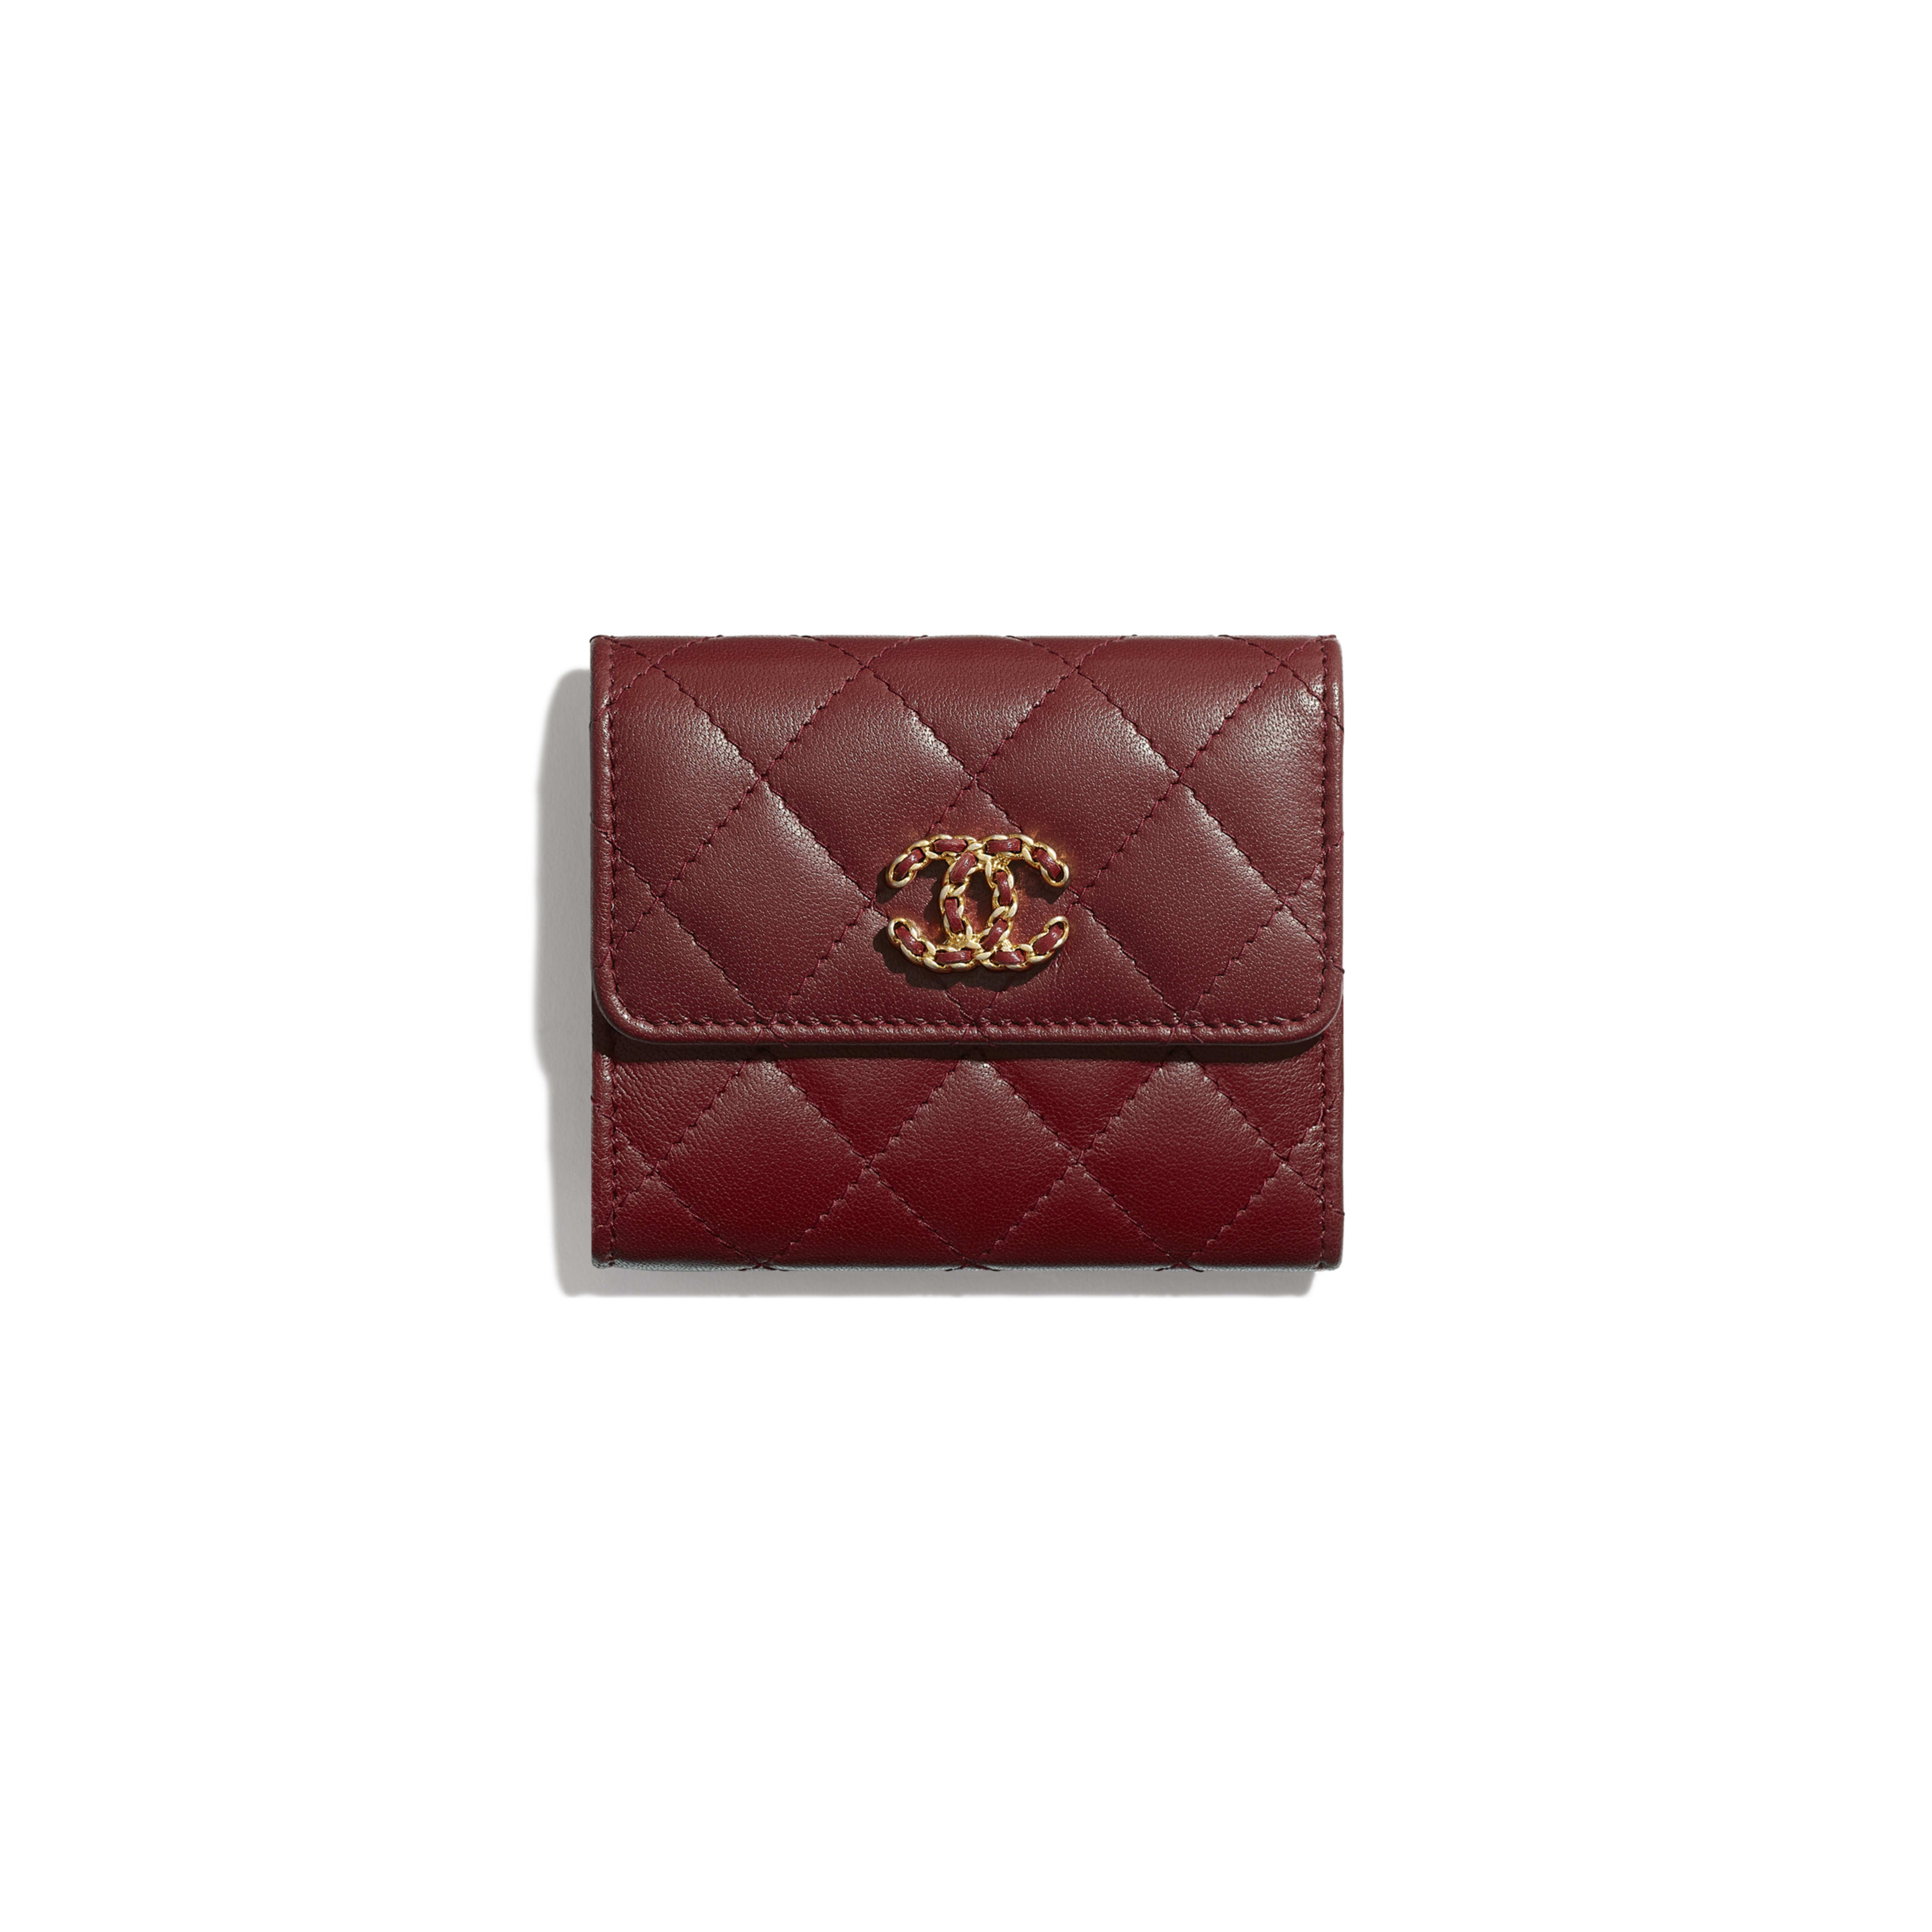 Small Flap Wallet - Burgundy - Lambskin - Default view - see full sized version